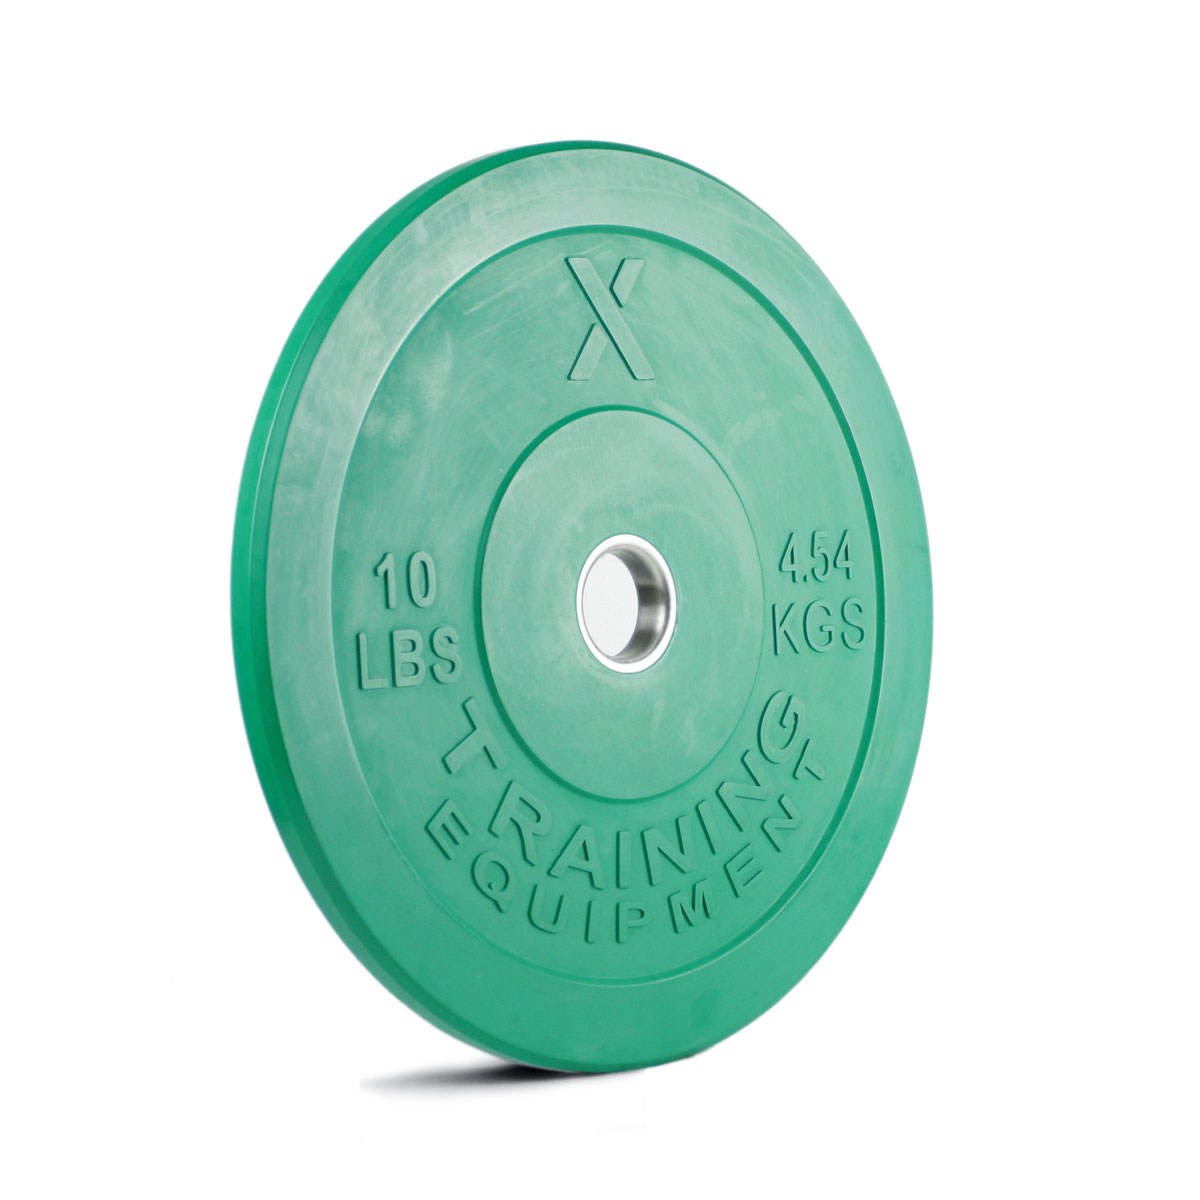 10LB Premium Color Bumper Plate Pair -  Pre-Order - Estimated to Ship 11/3